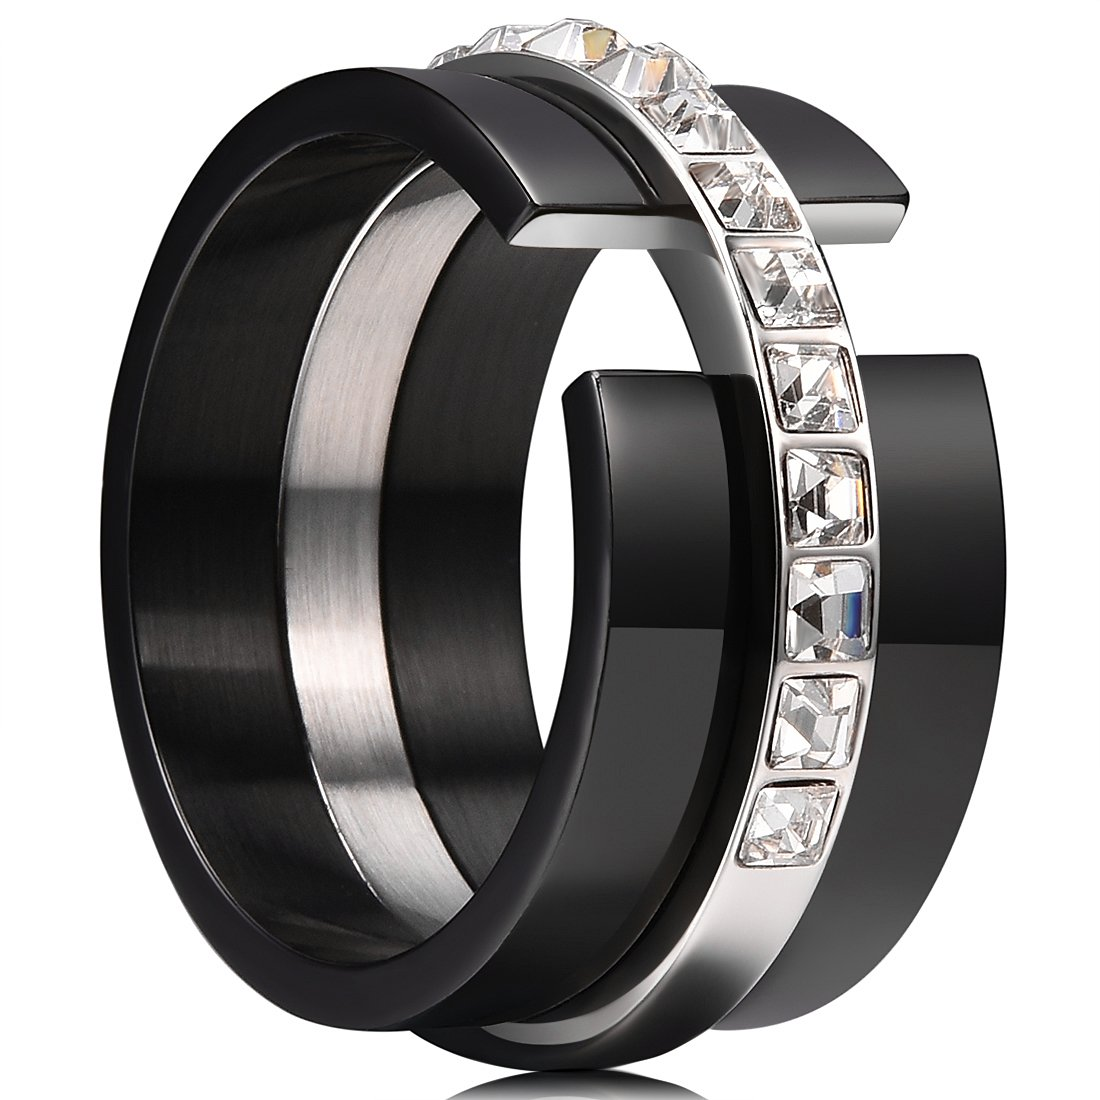 King Will 11mm 316LStainless Steel Wedding Band Polished Ring with 12 Black Square Transparent CZ Inlaid&Inner Surface Matte(10.5)